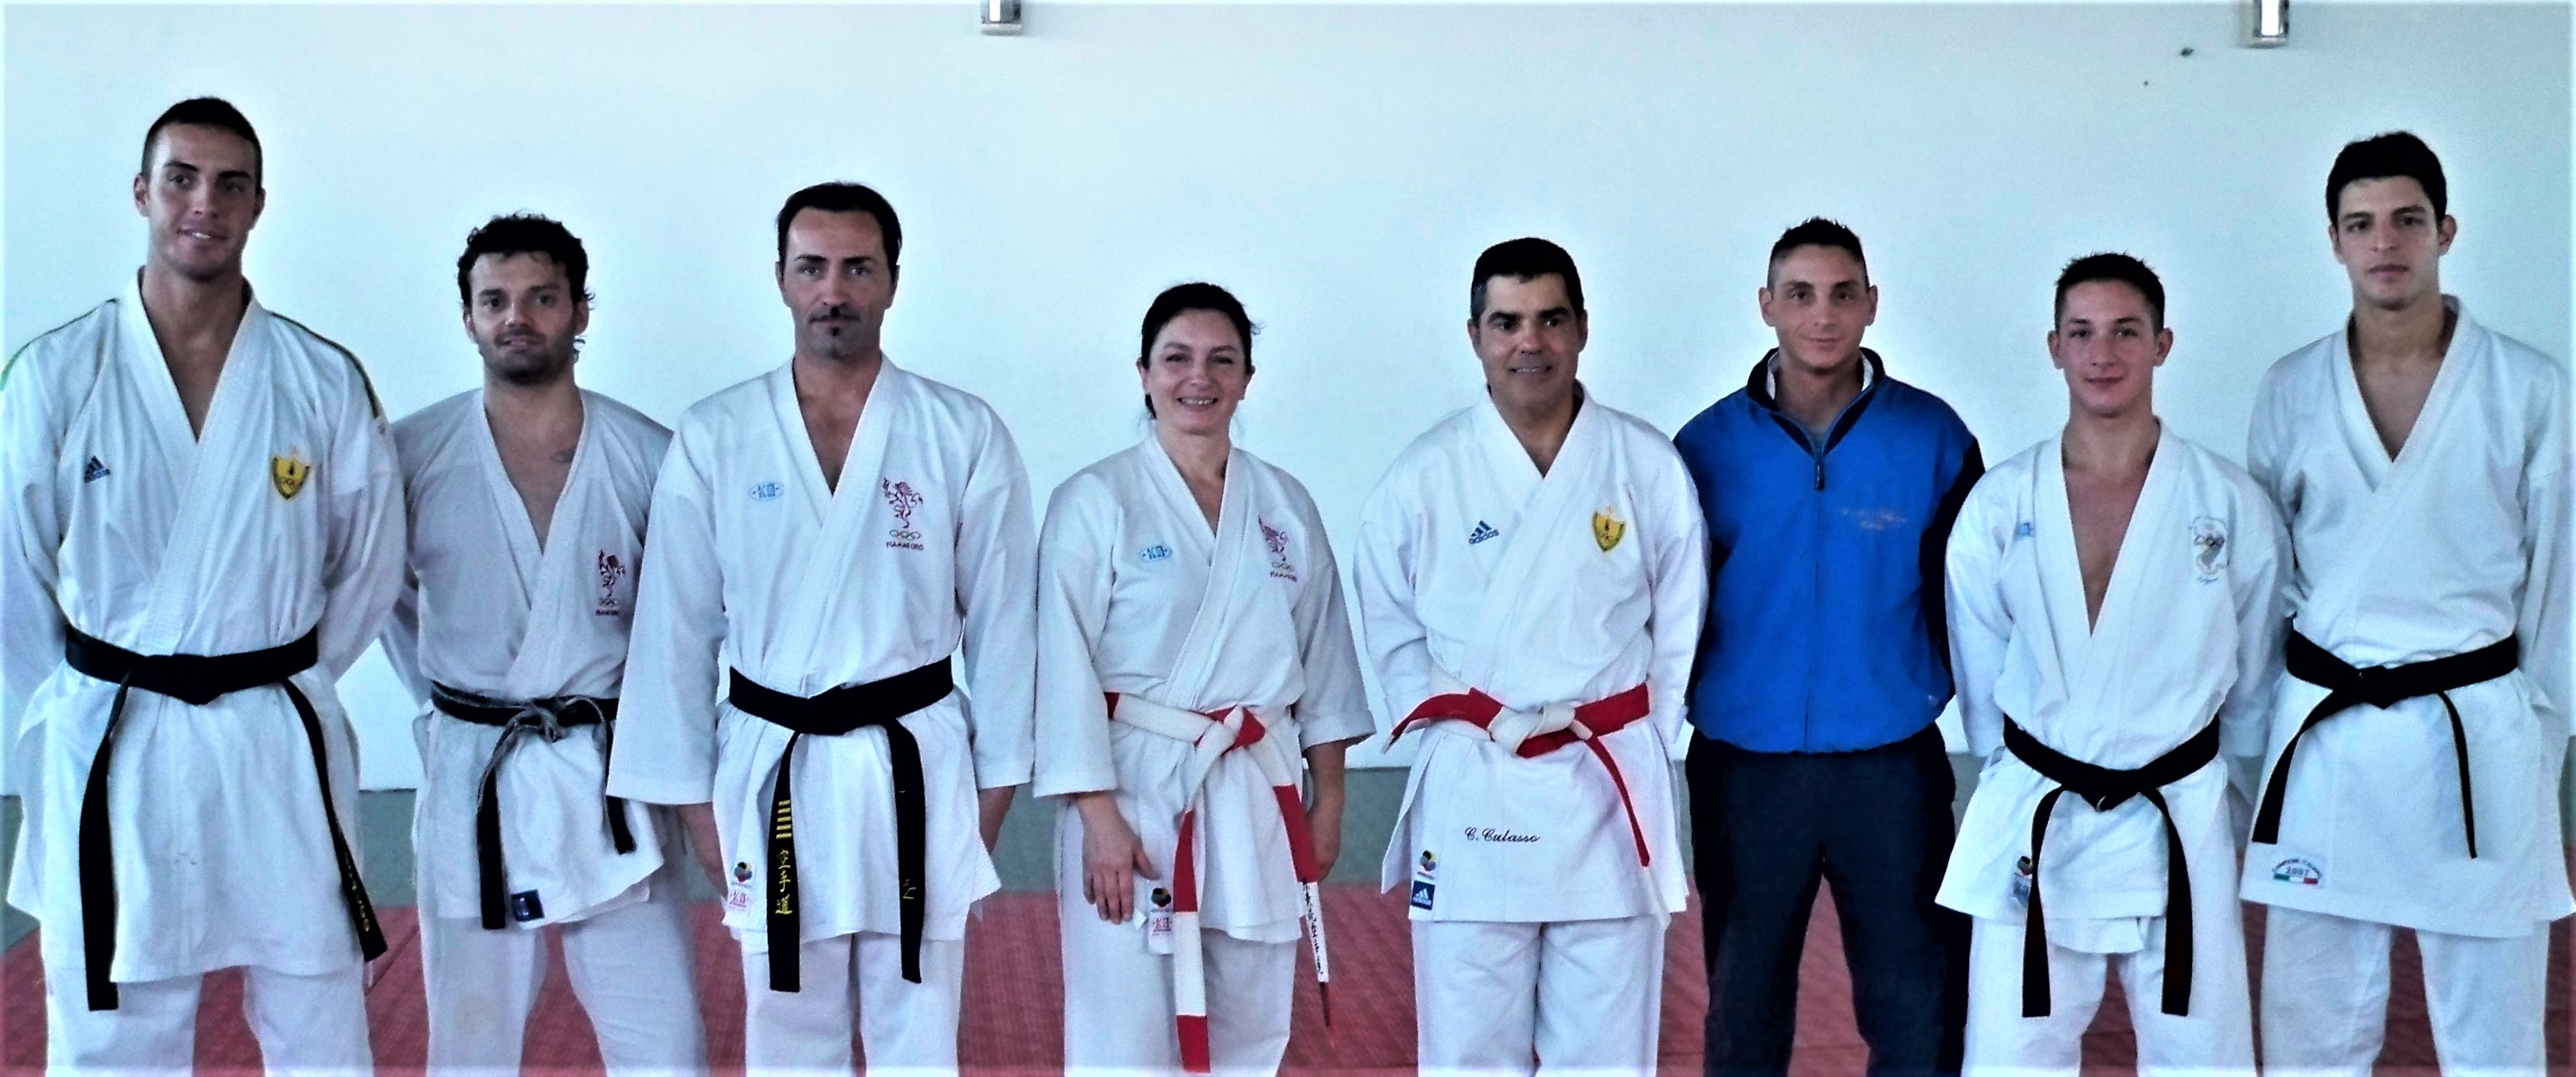 ALLENAMENTI INTERFORZE DI KARATE